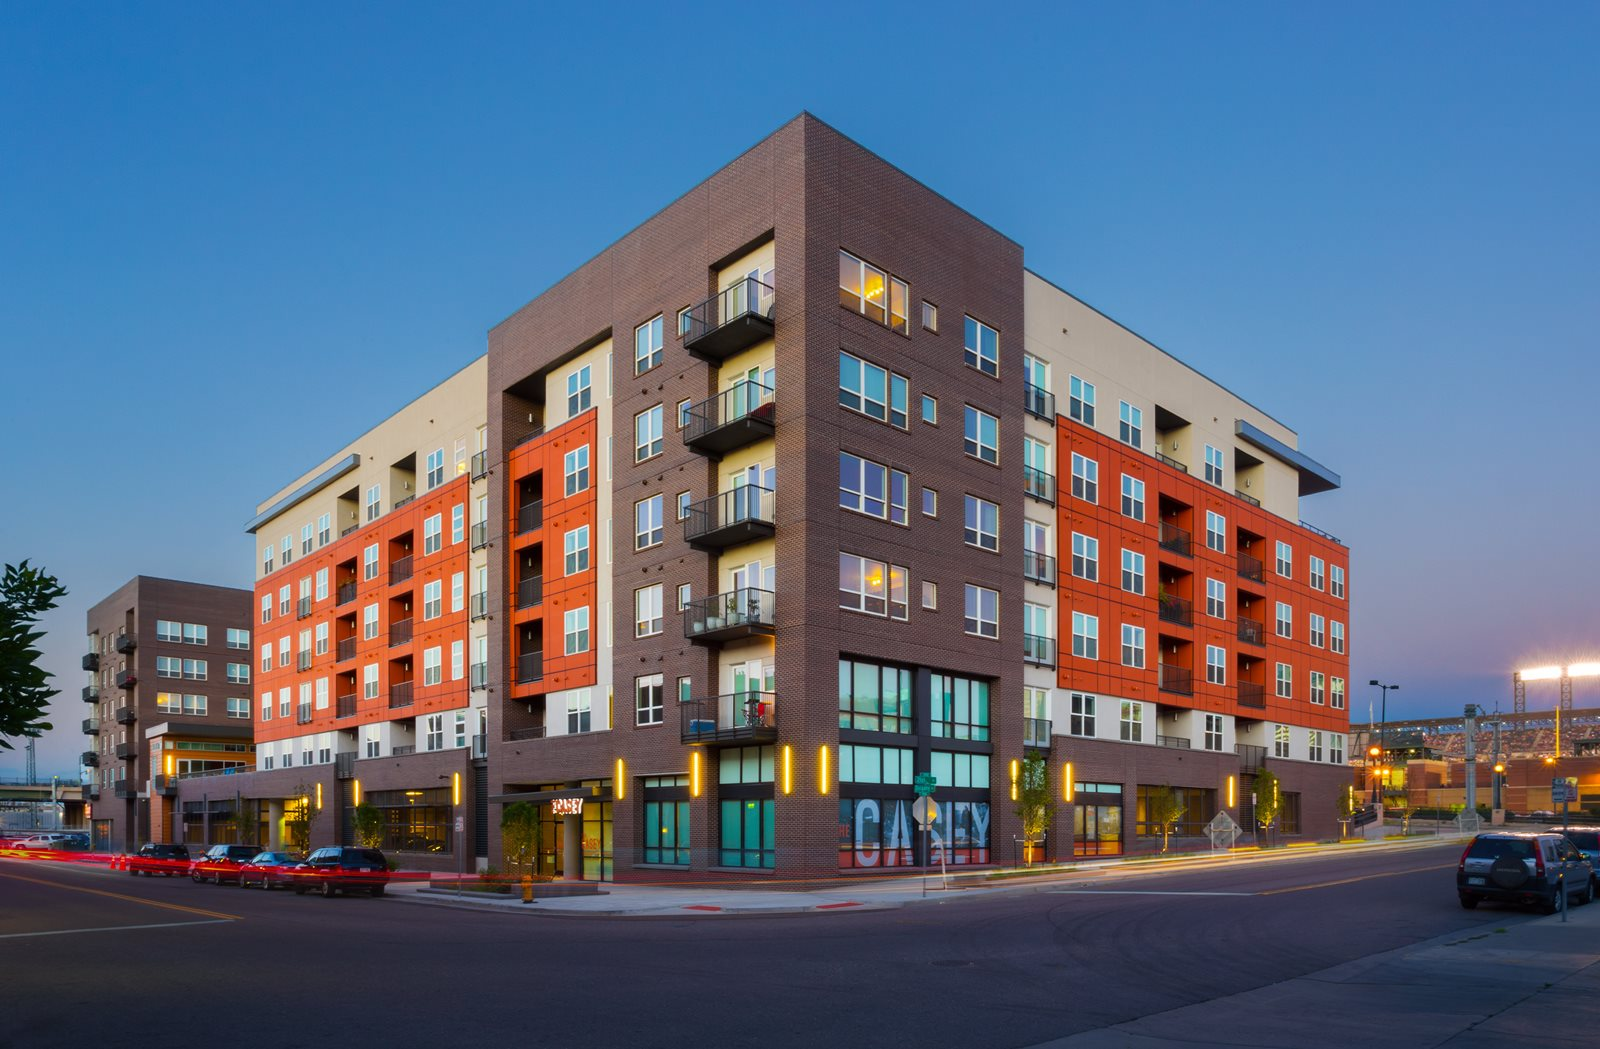 The Casey Luxury Apartments In Denver Co Home